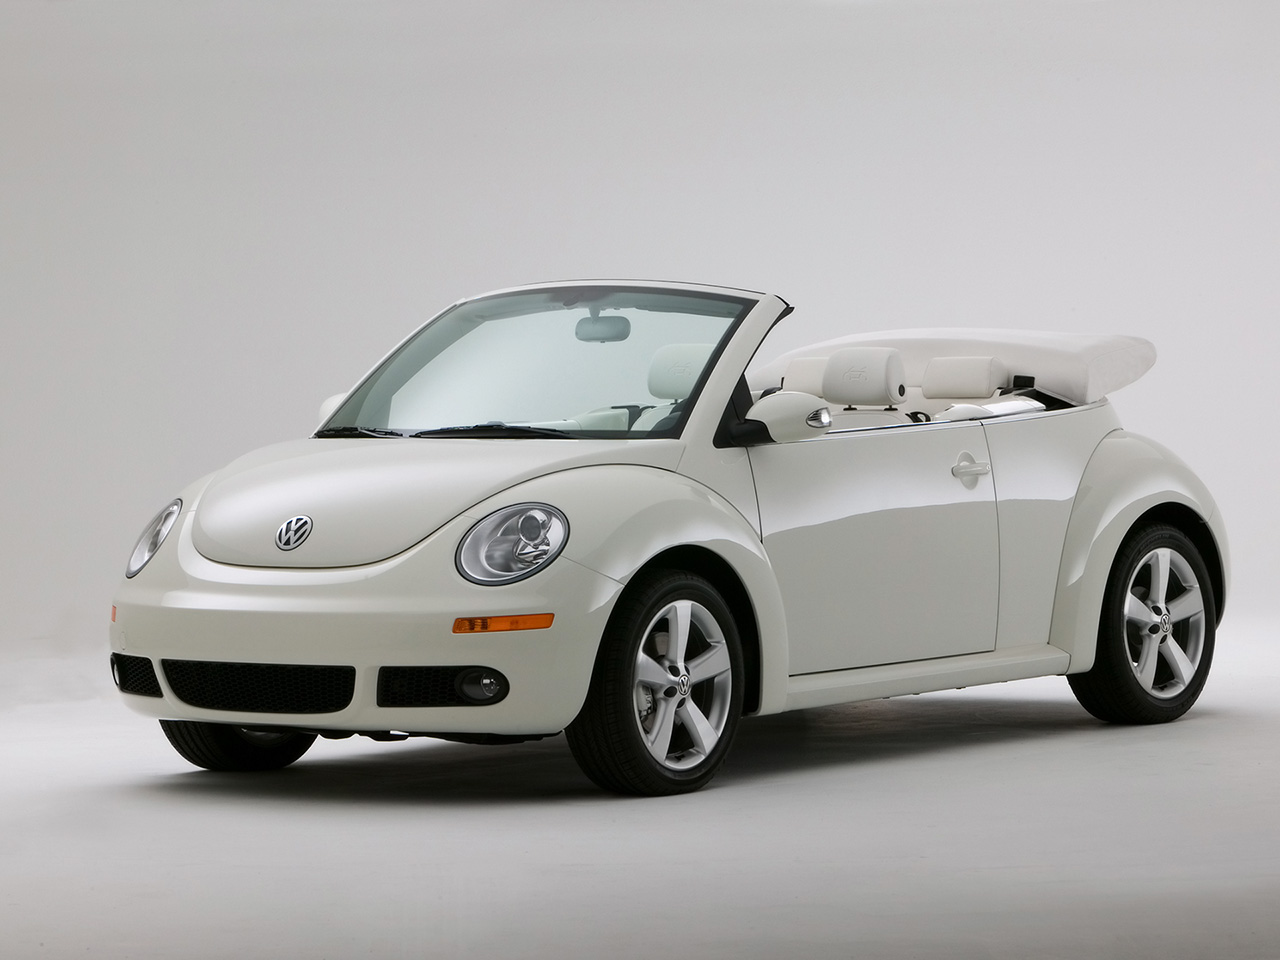 all new volkswagen beetle cabrio will be available in november 2012 diverse information